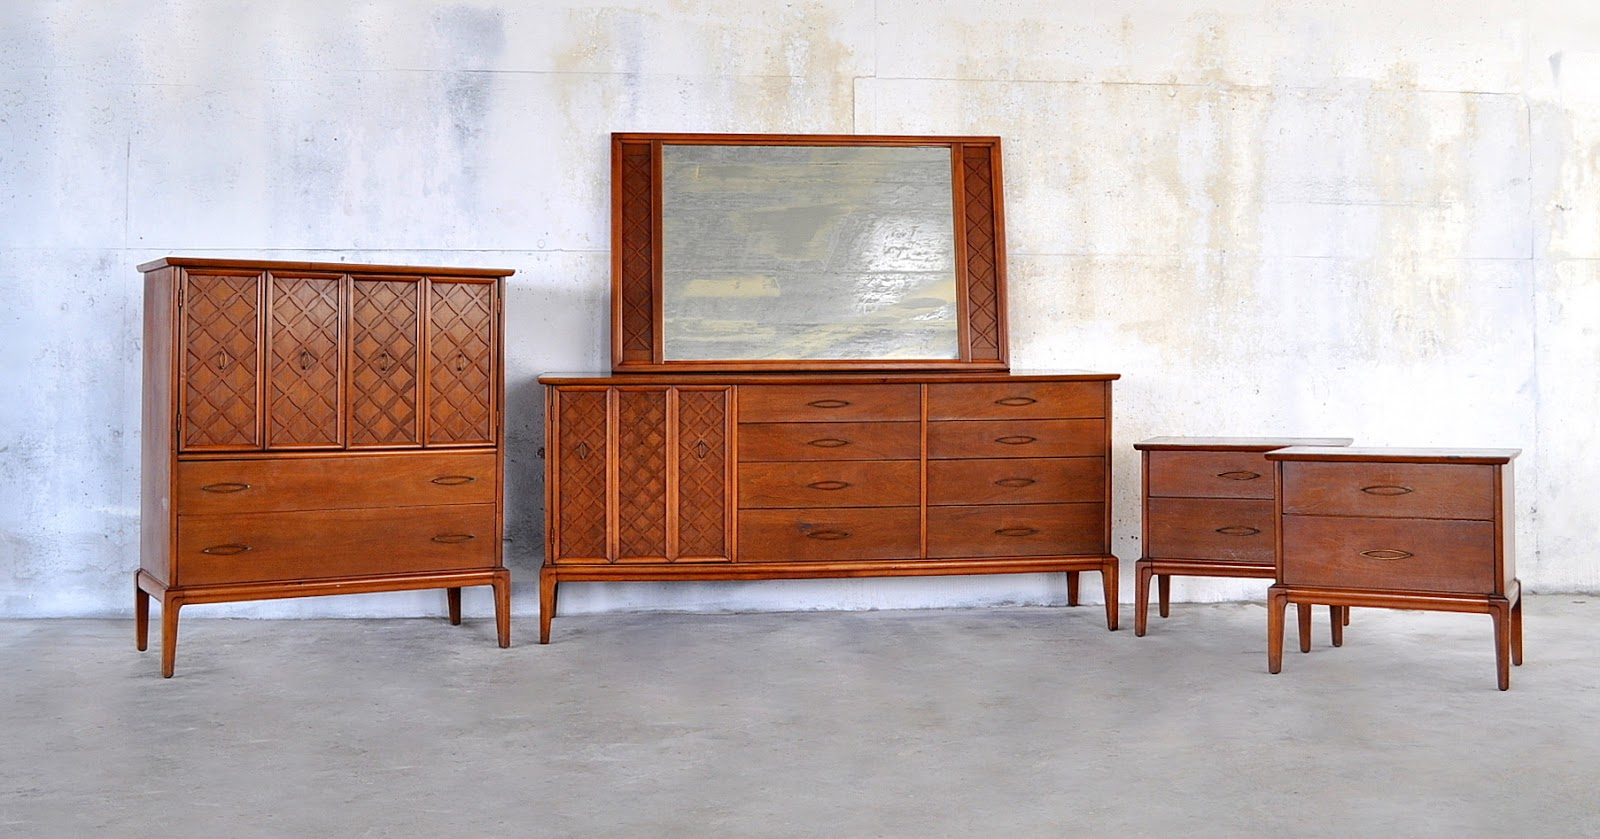 Select modern mid century modern highboy dresser - Midcentury modern bedroom furniture ...